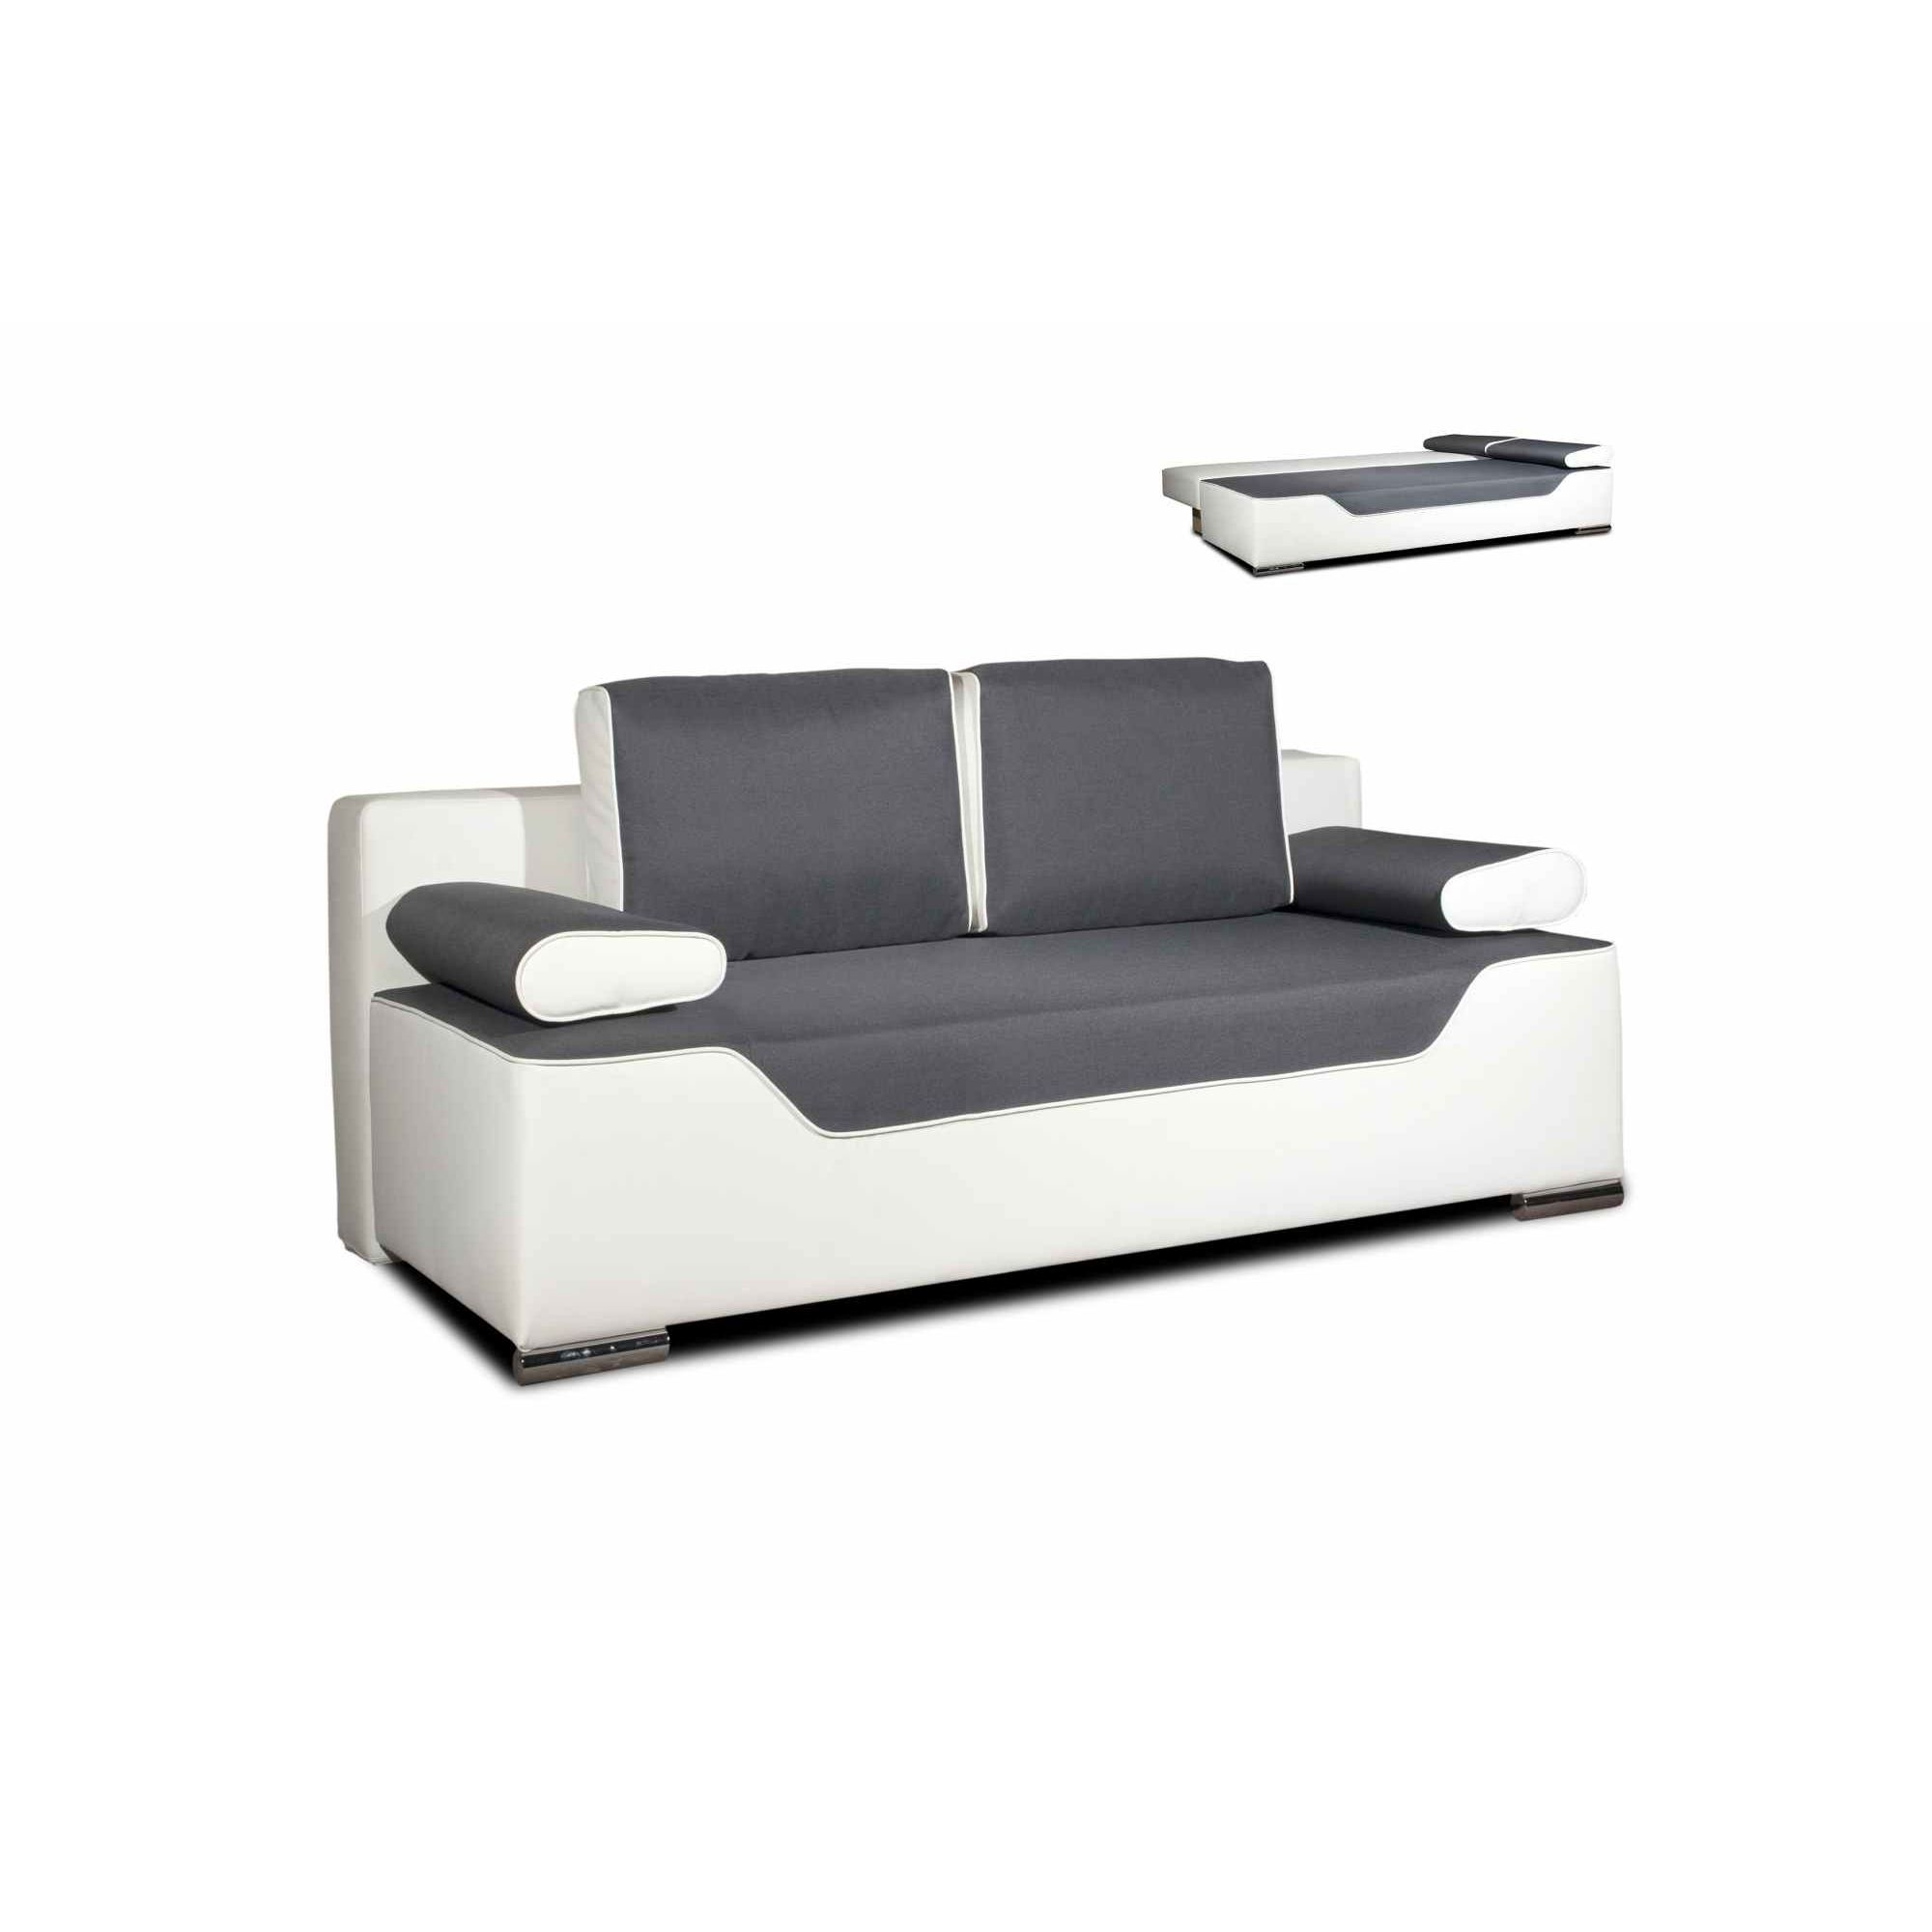 deco in paris canape 3 places convertible gris et blanc. Black Bedroom Furniture Sets. Home Design Ideas